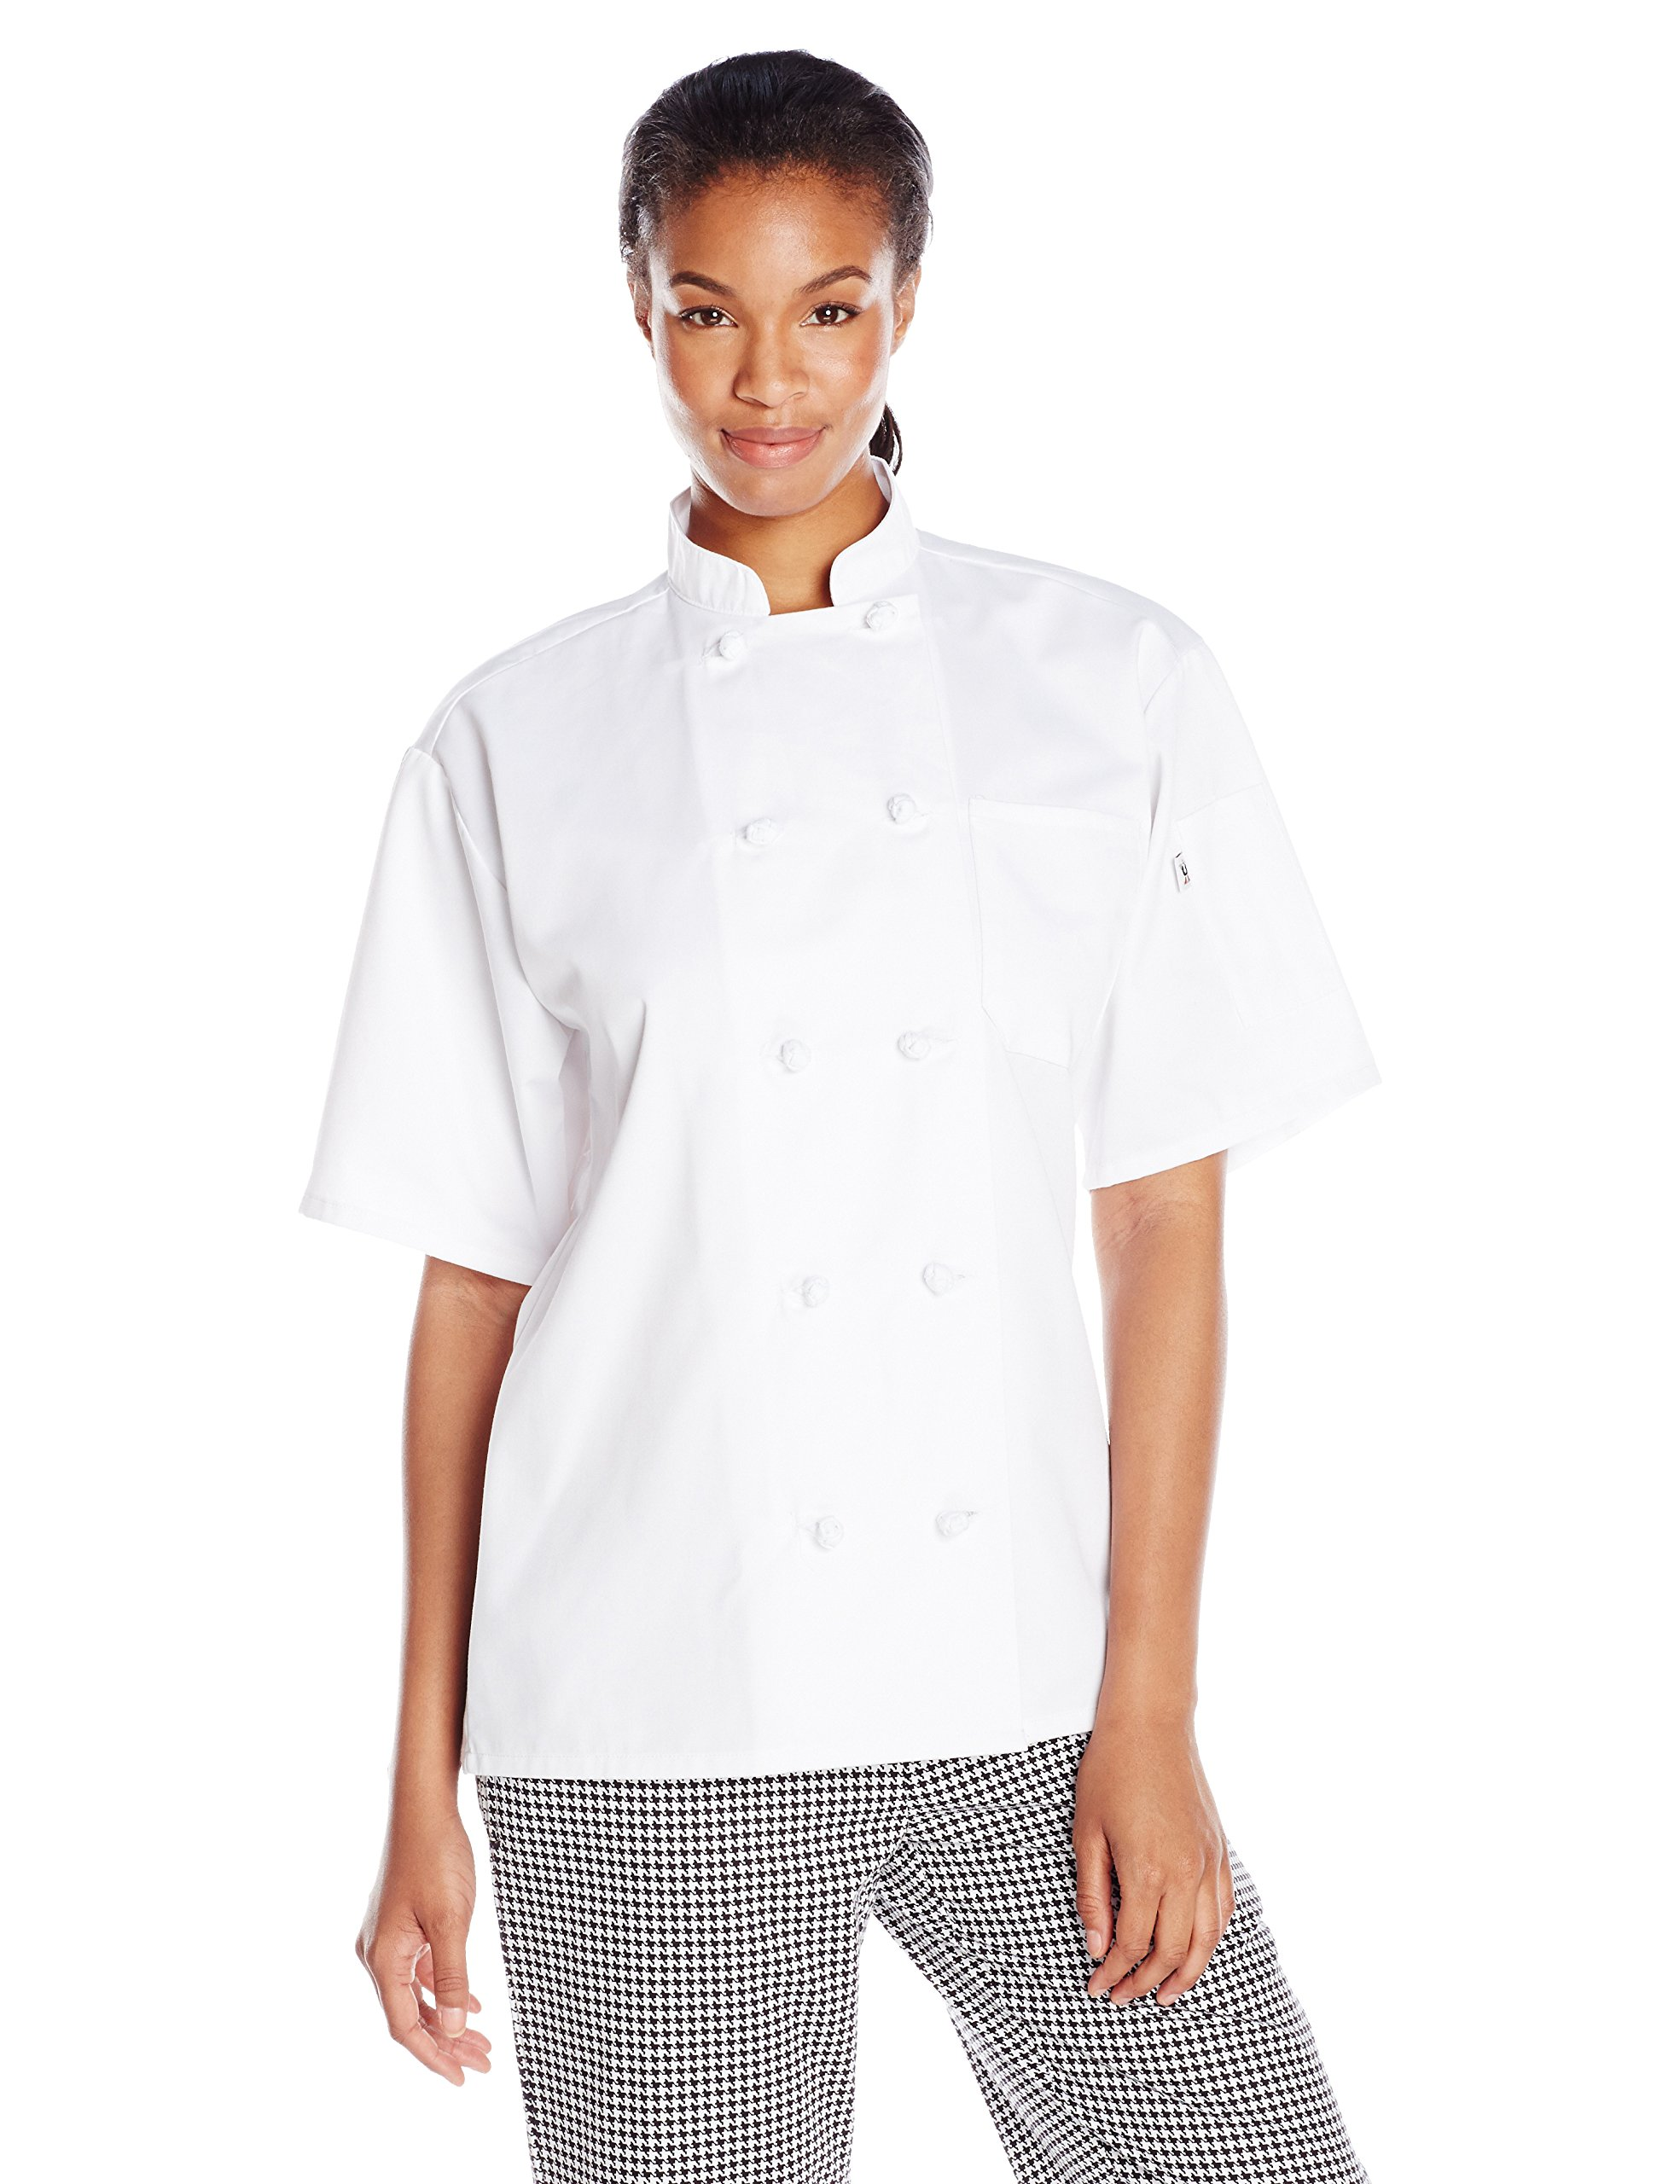 Uncommon Threads Unisex Monterey Chef Coat, White, Medium by Uncommon Threads